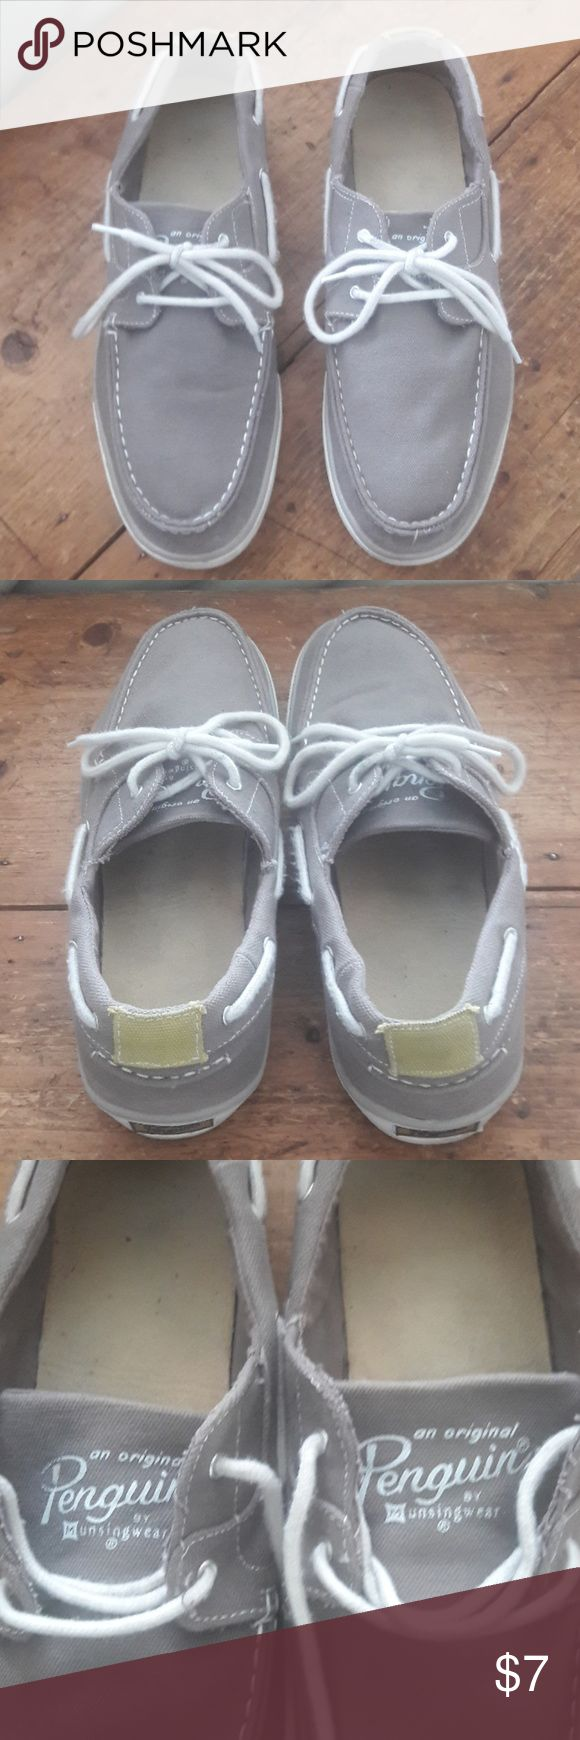 Penguin canvas boat shoes These are men's canvas boat shoes. They are in good condition. There is a spot on the back bottom of the left shoes that shows some ware. No holes. Penguin Shoes Boat Shoes